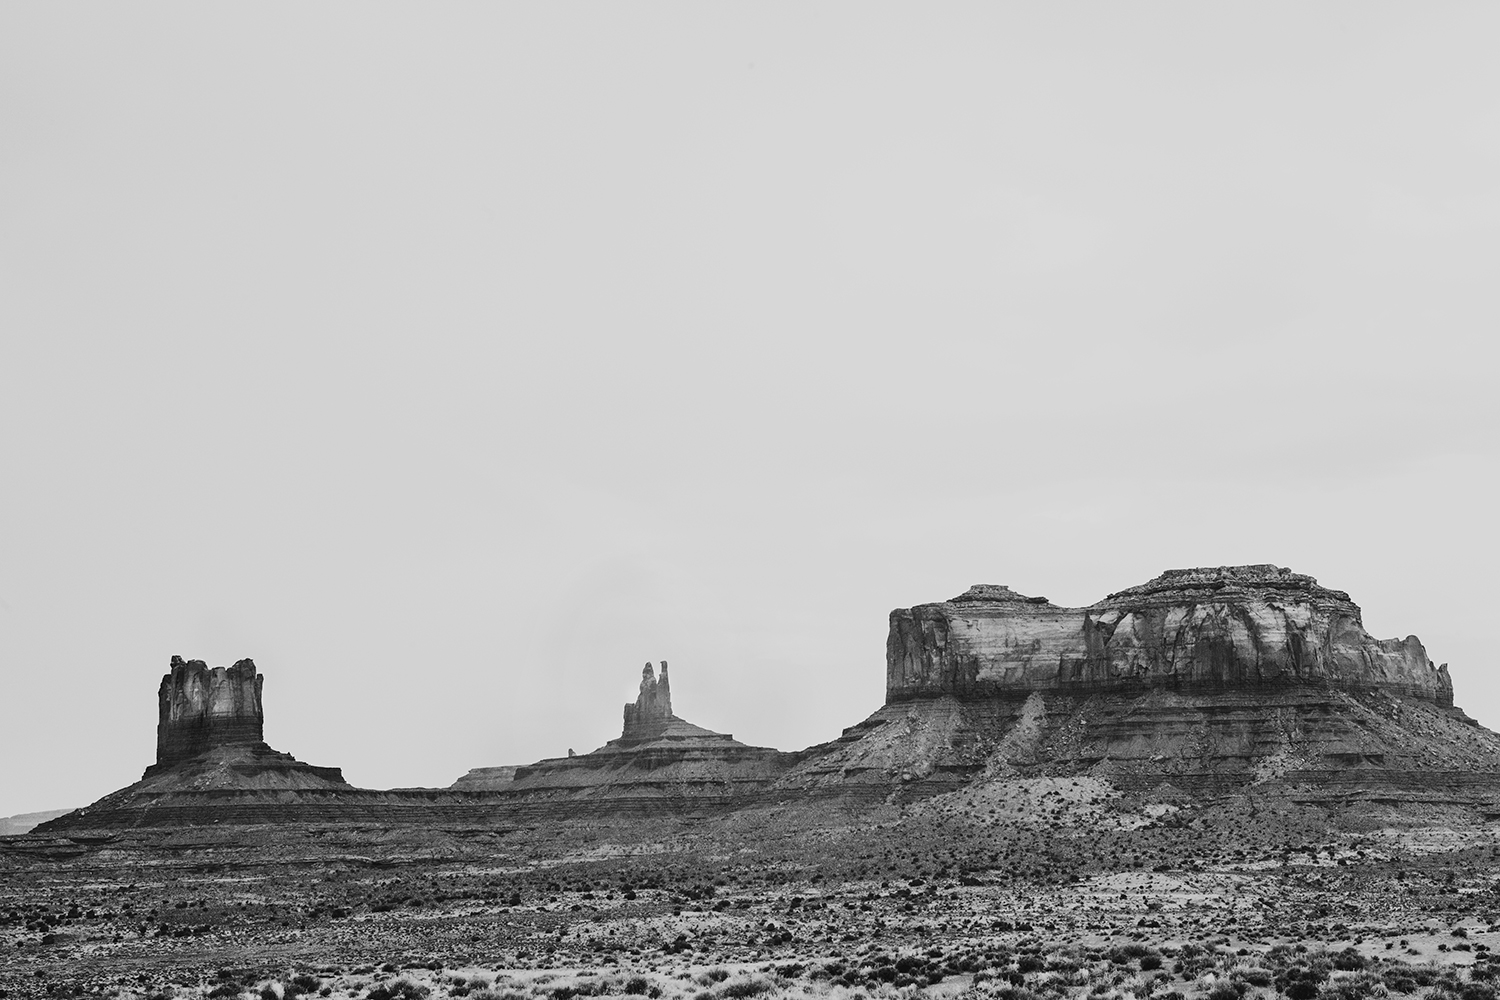 Monument Valley copyright 2016 Anna Malmberg